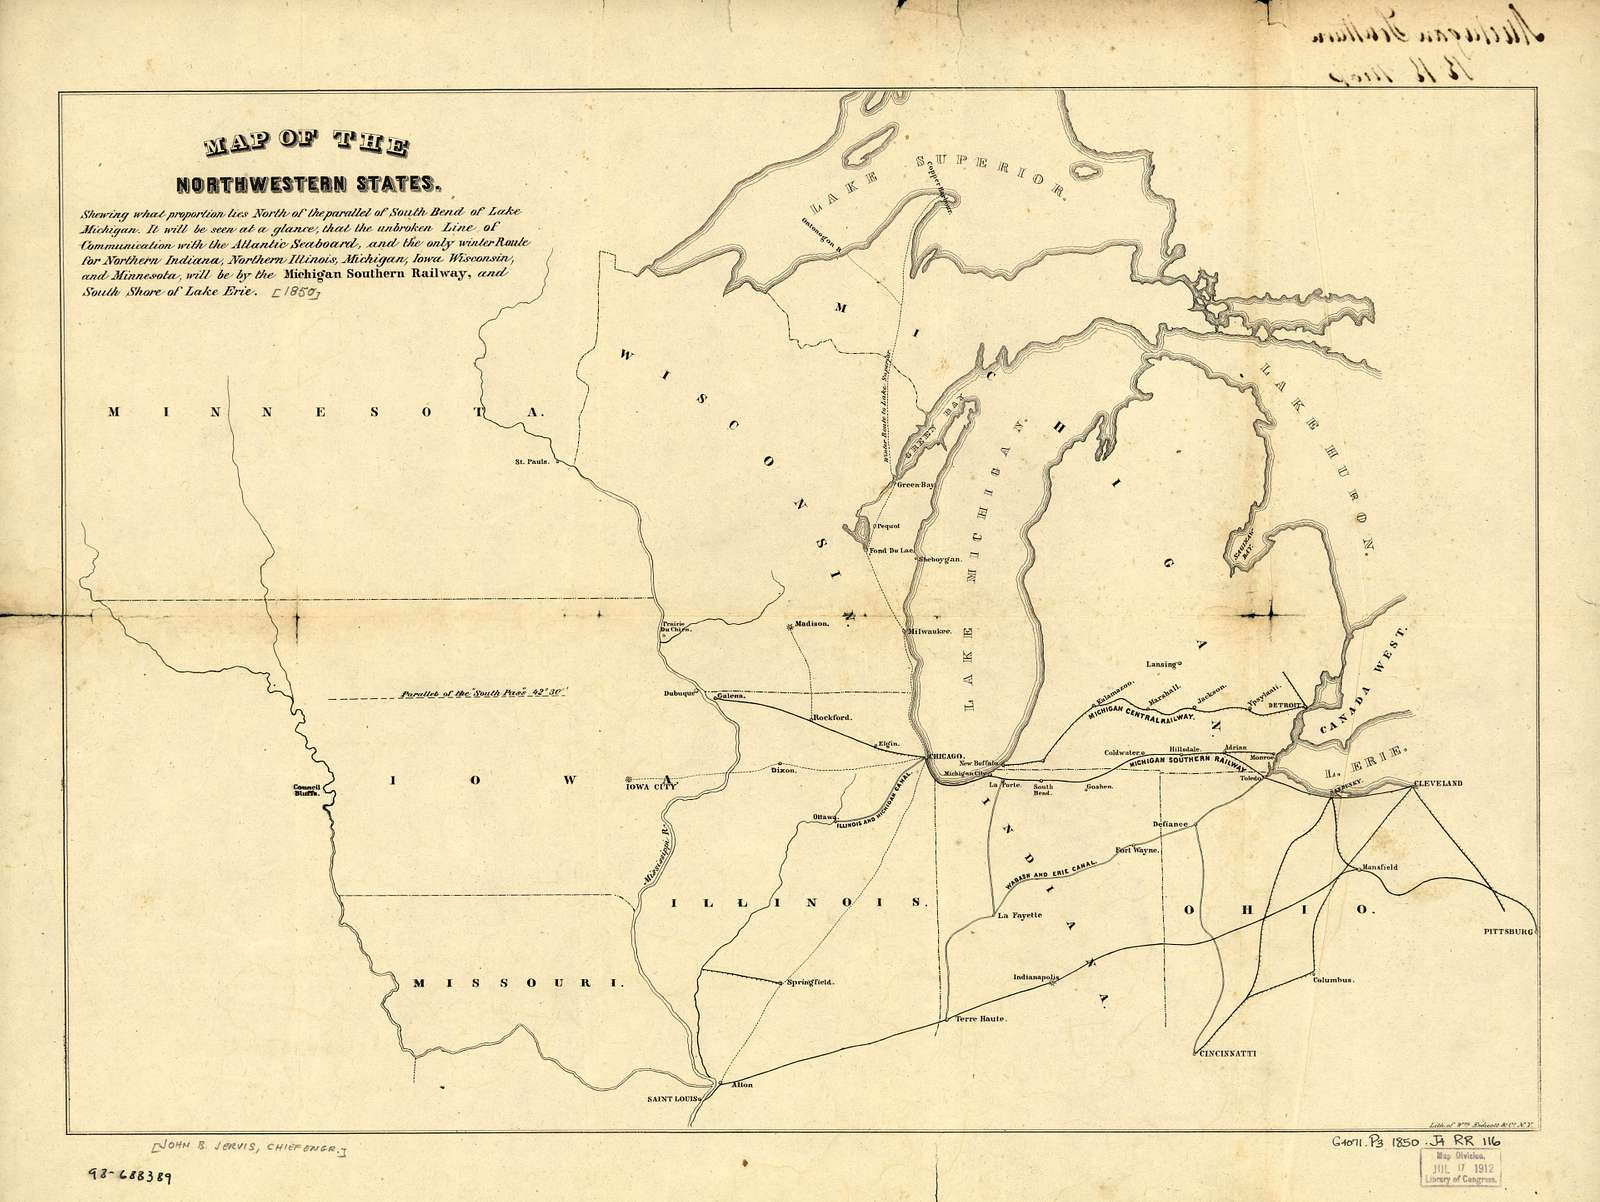 Map of the northwestern states. Shewing [sic] what proportion lies north of the parallel of South Bend of Lake Michigan. It will be seen at a glance, that the unbroken line of communication with the Atlantic seaboard, and the only winter route for northern Indiana, northern Illinois, Michigan, Iowa, Wisconsin, and Minnesota, will be by the Michigan Southern Railway, and south shore of Lake Erie.